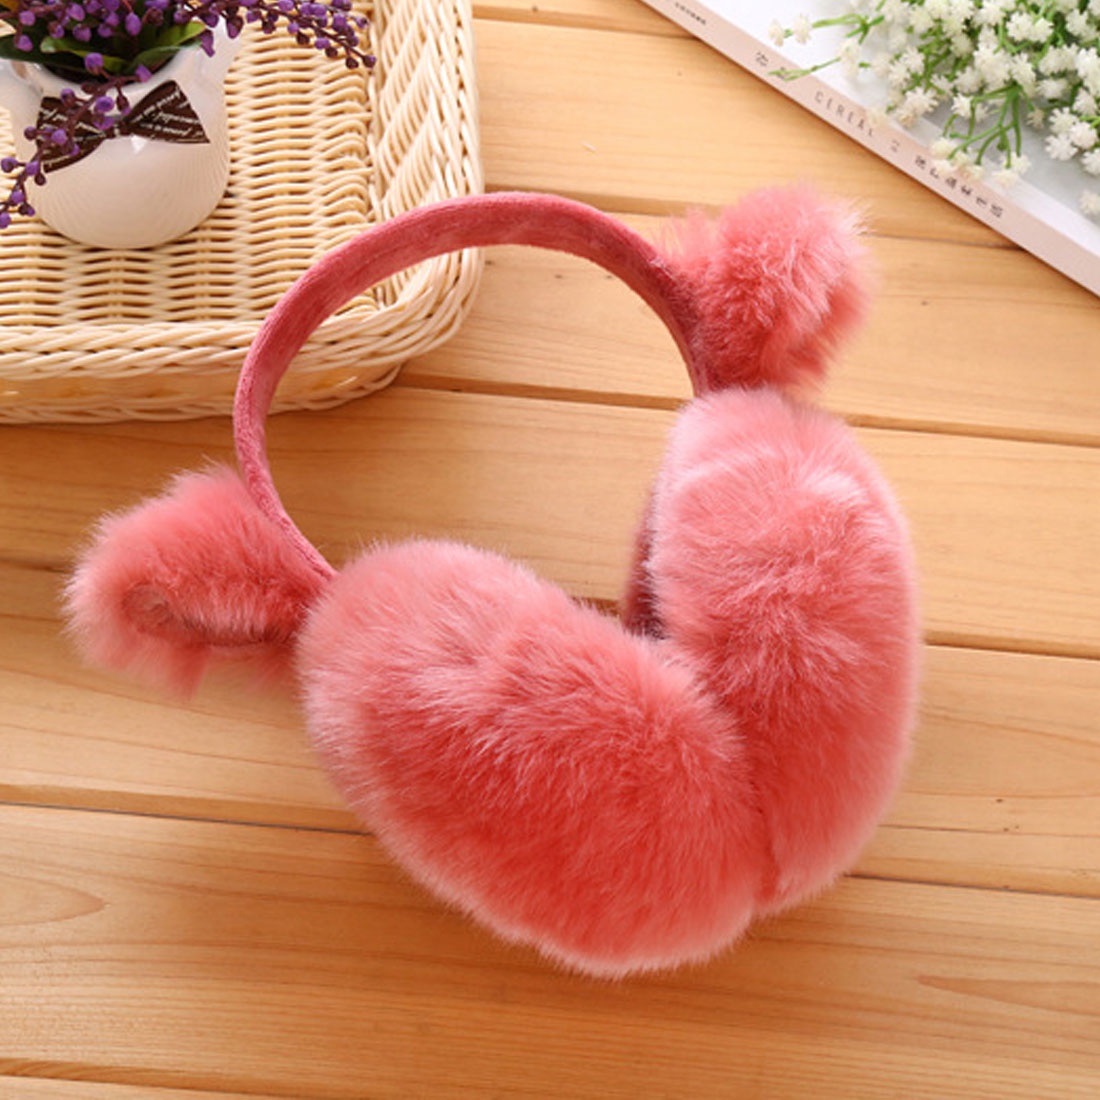 2017 Comfortable Winter Soft Rabbit Earmuffs For Women Warm Fur Ear Cover Winter Warm Ear Warmers Gifts For Girls Female